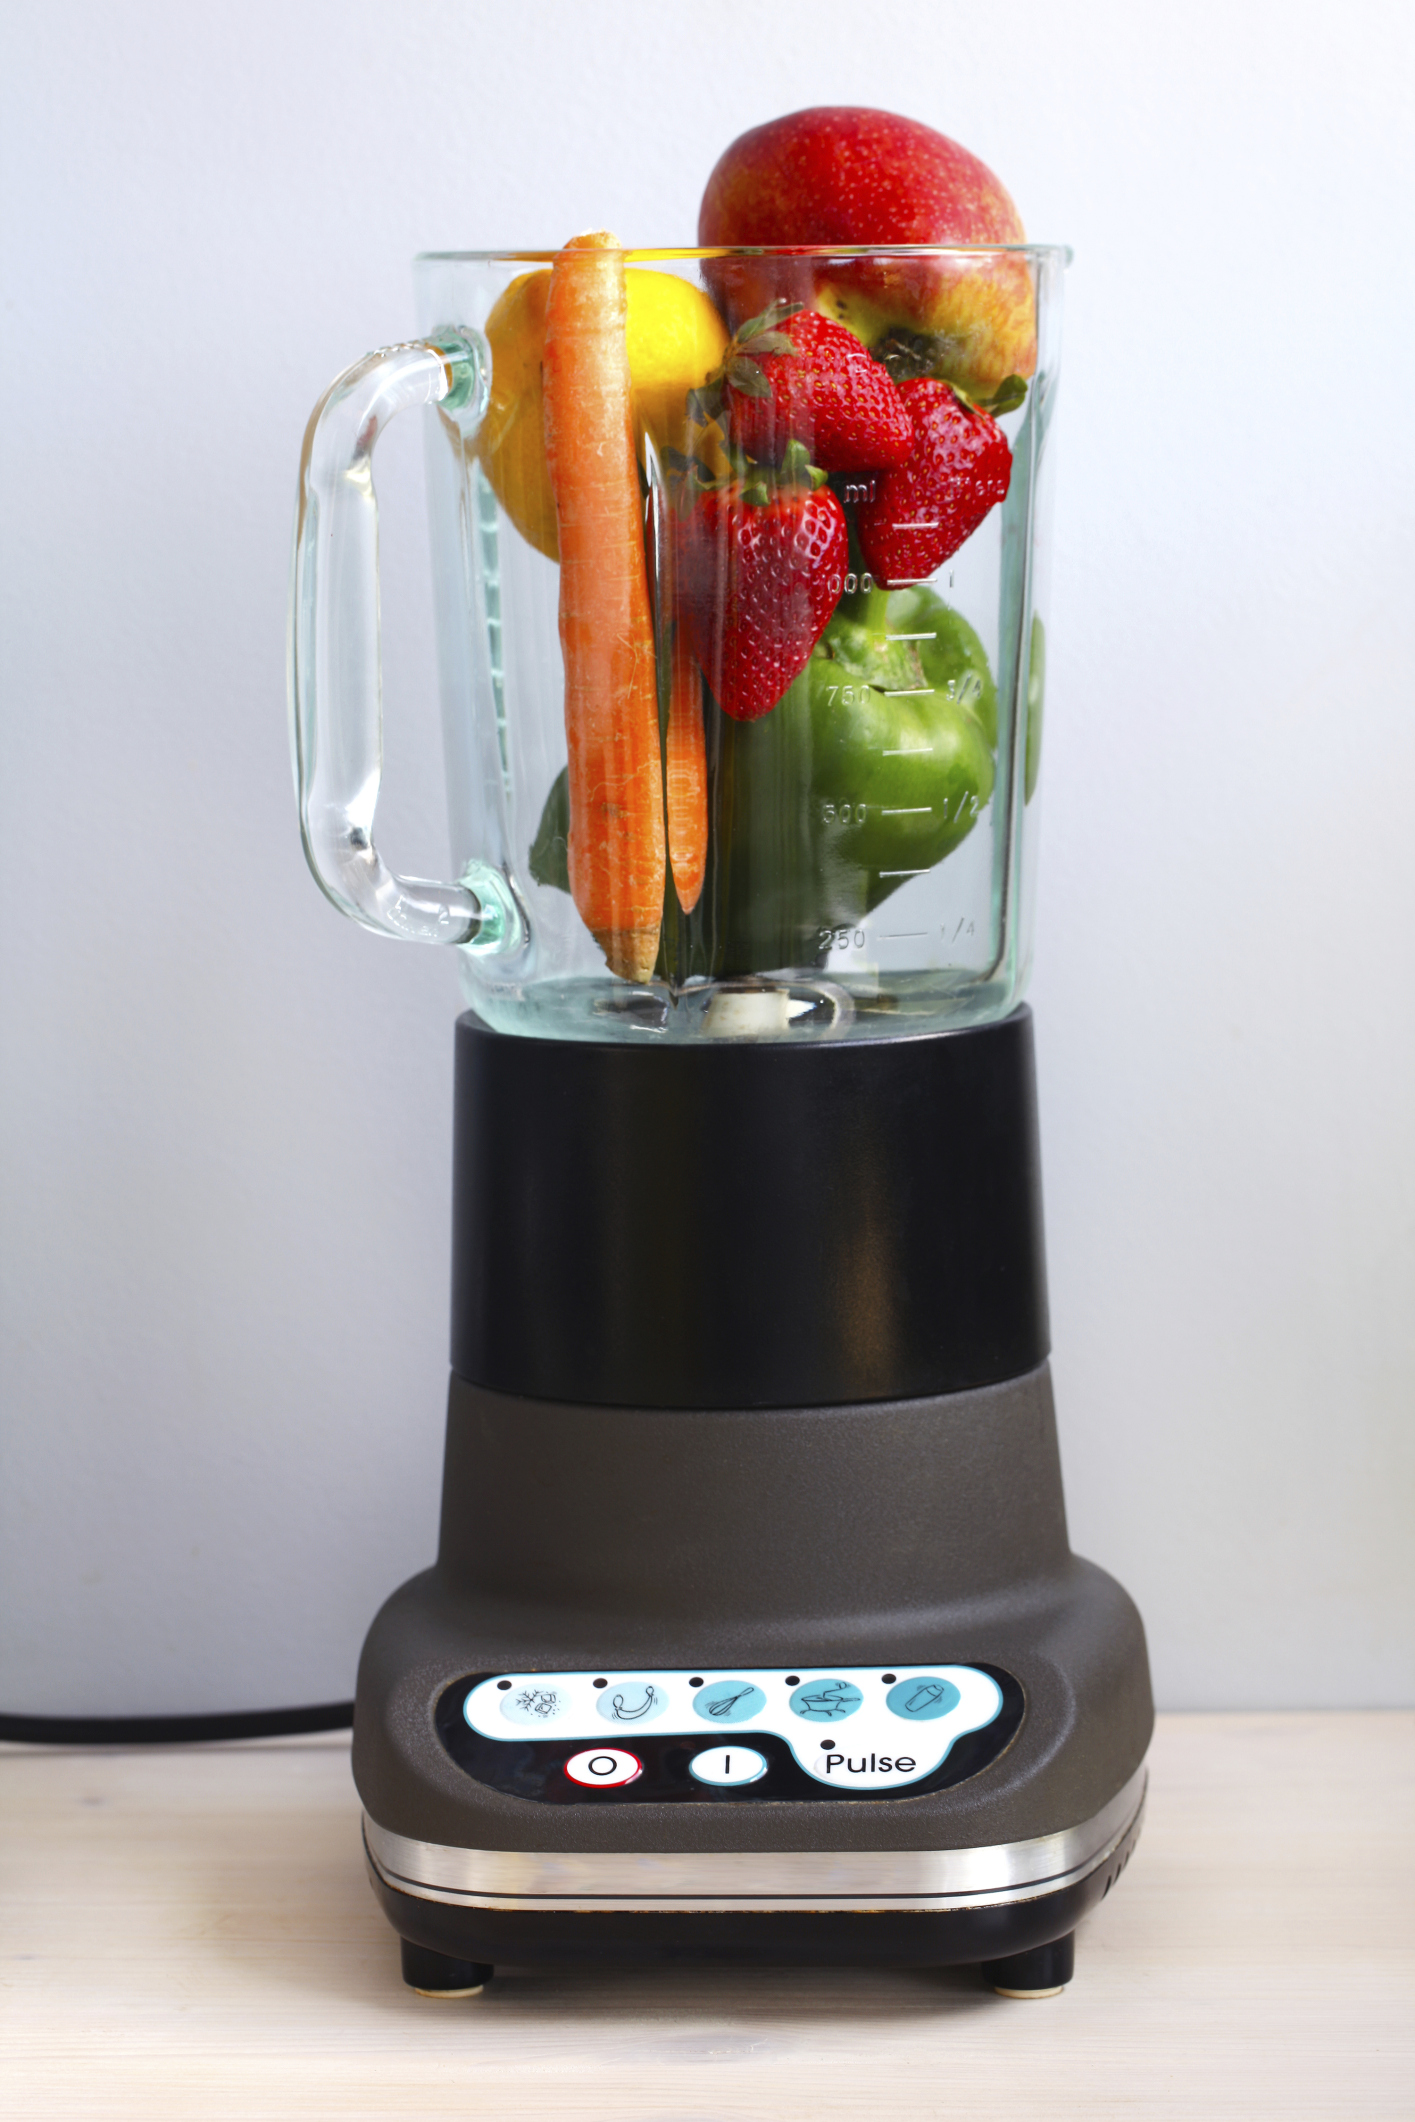 SmoothieBlender